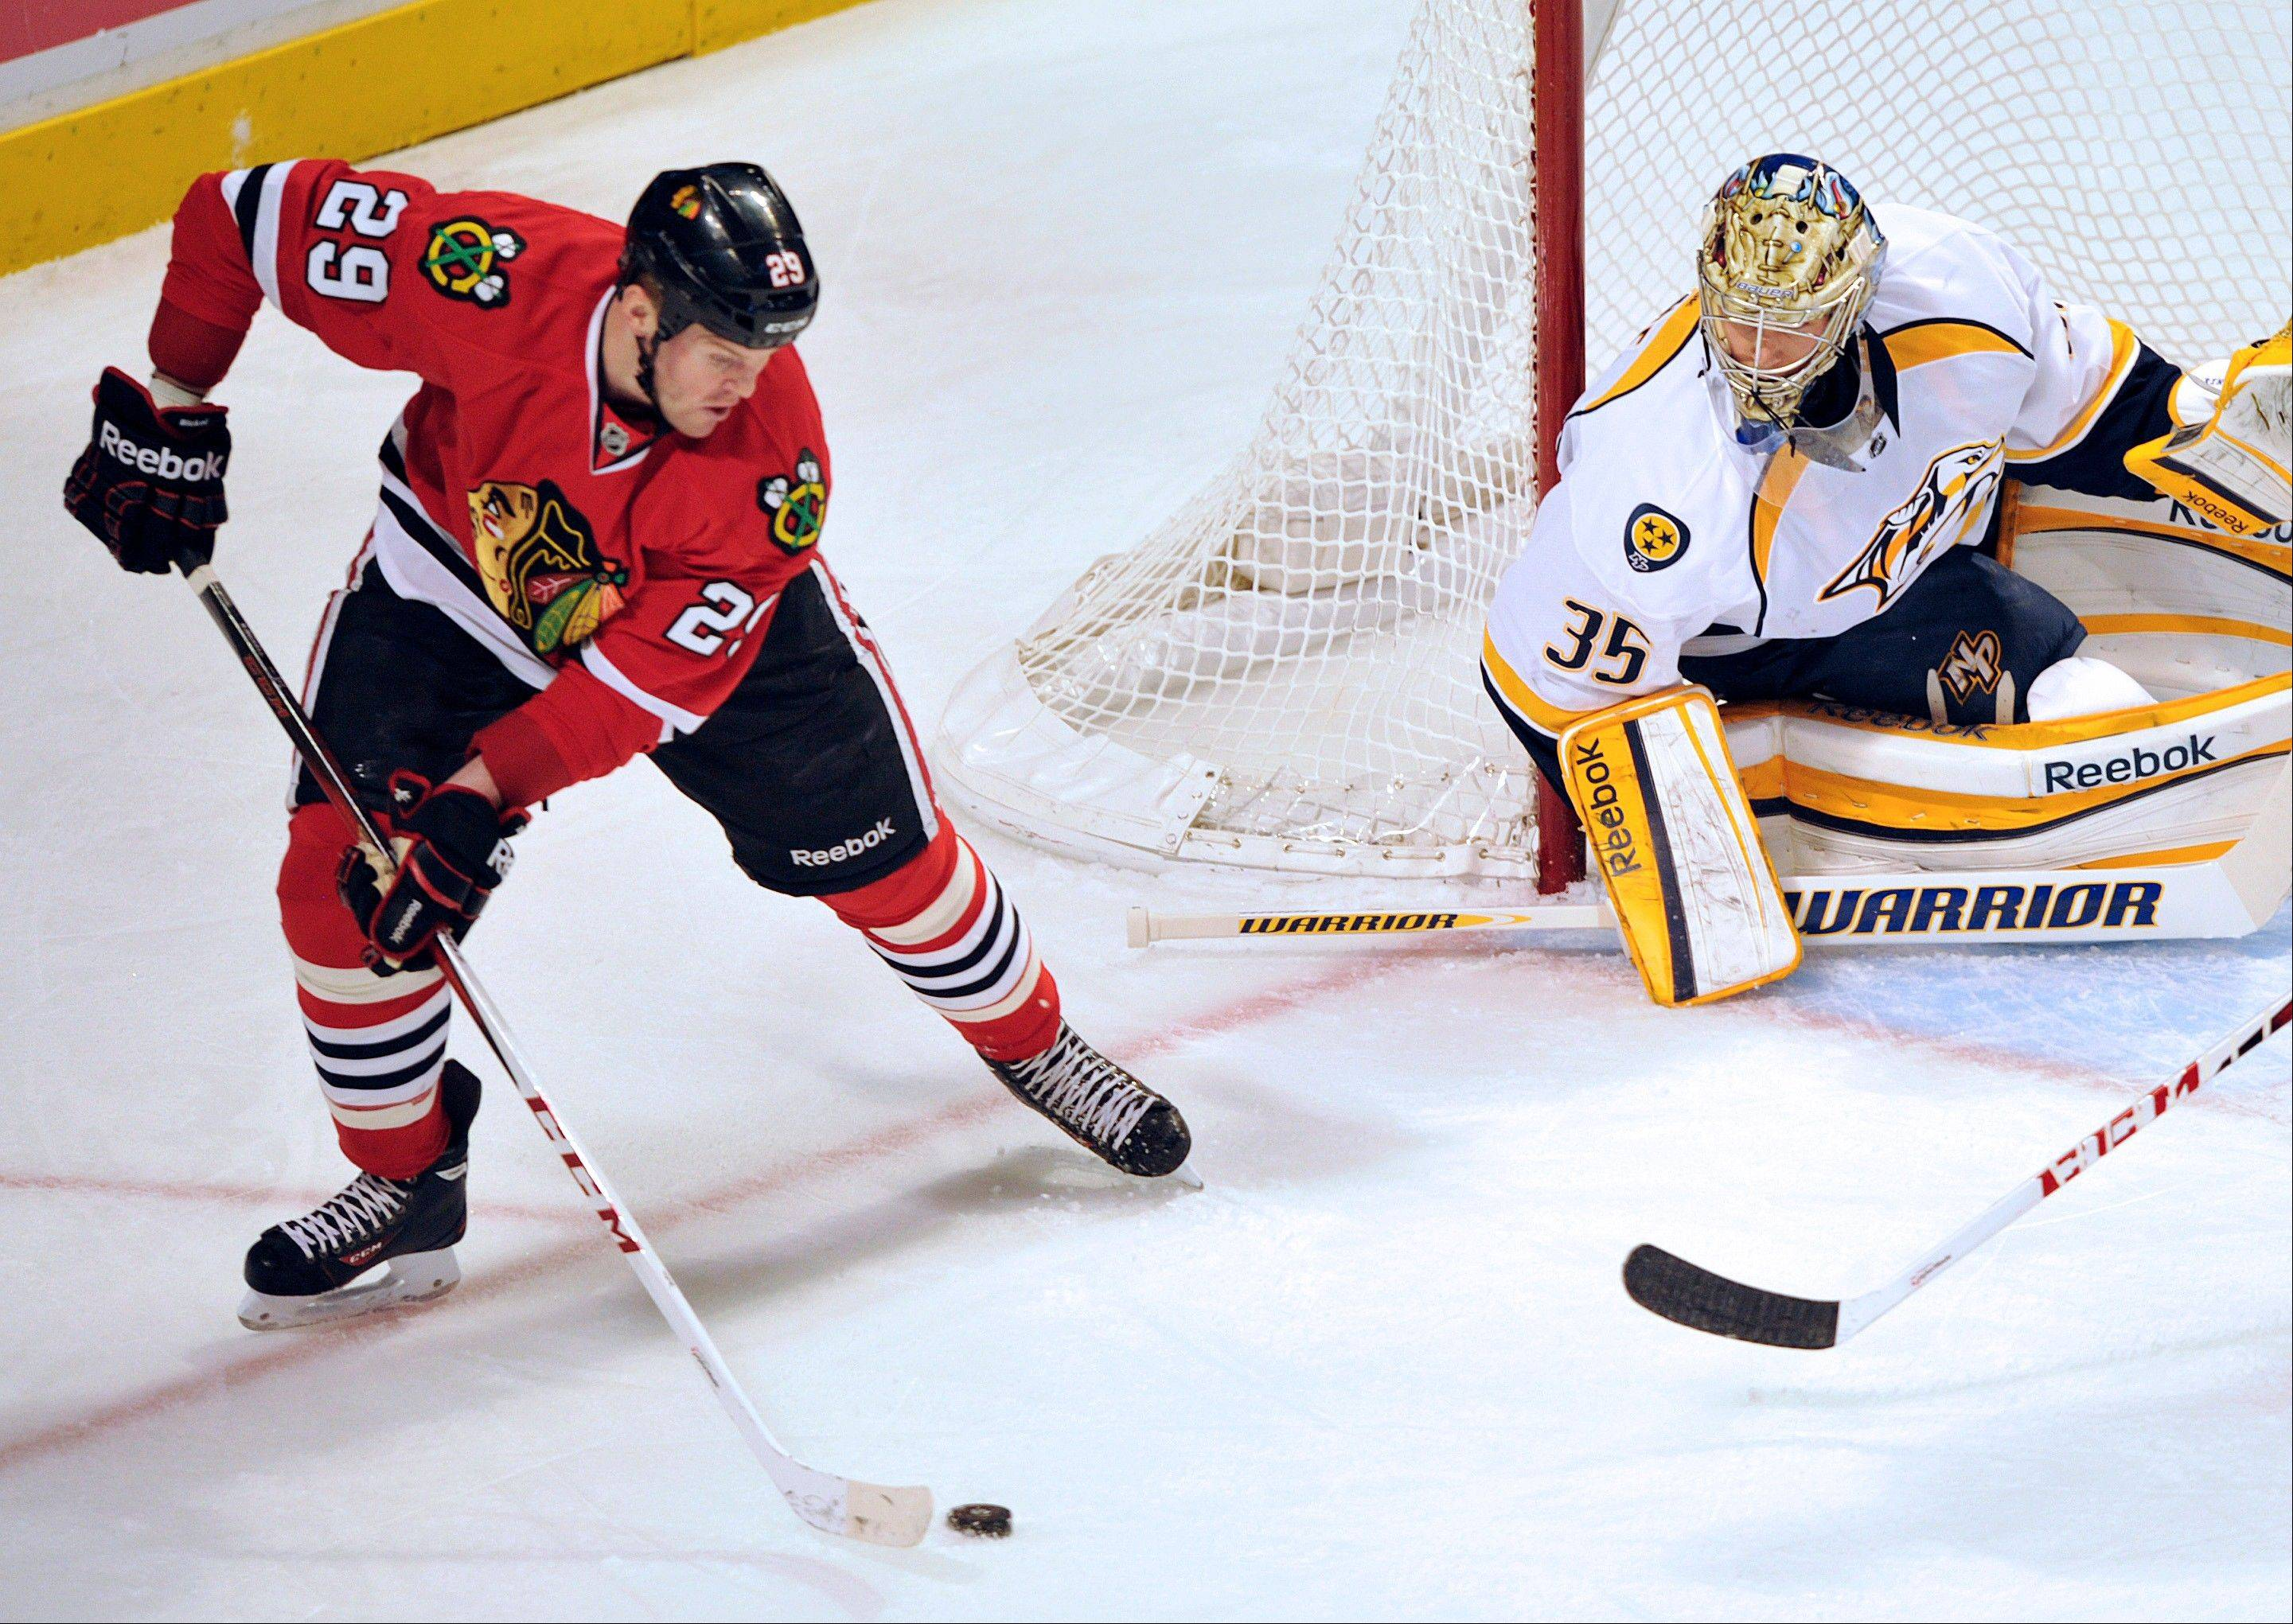 Chicago Blackhawks' Bryan Bickell (29) looks to shoot the puck on Nashville Predators' Pekka Rinne (35) during the first period.